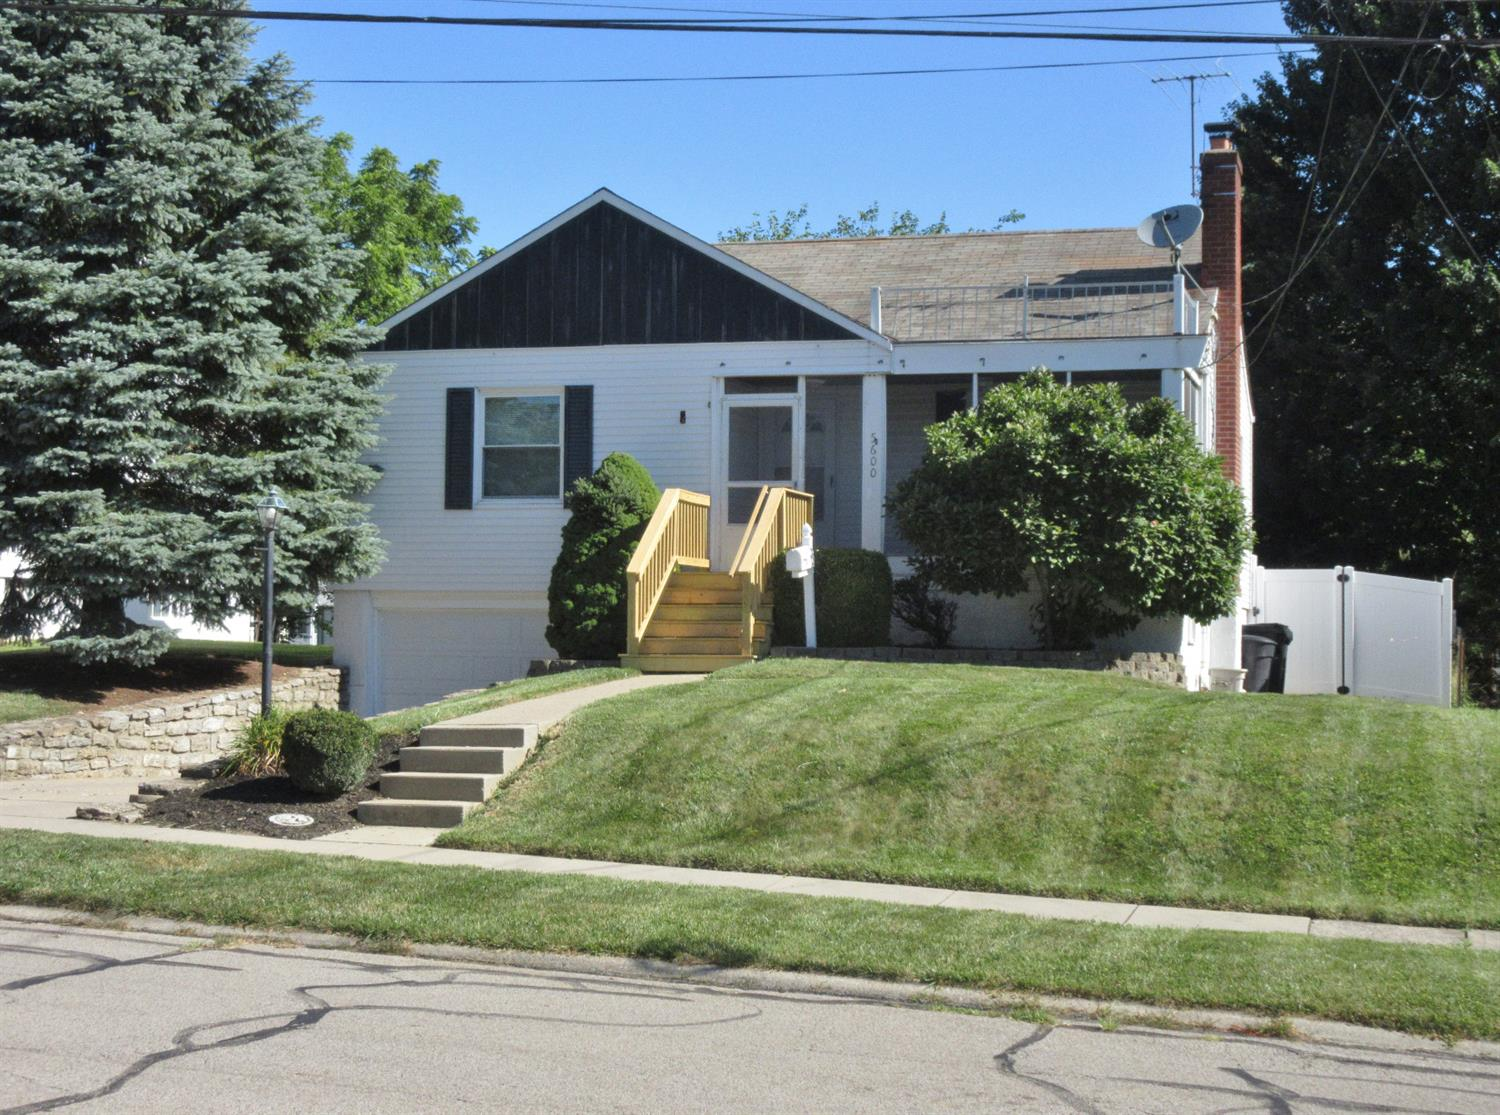 Photo 3 for 5600 Biscayne Ave Bridgetown, OH 45248